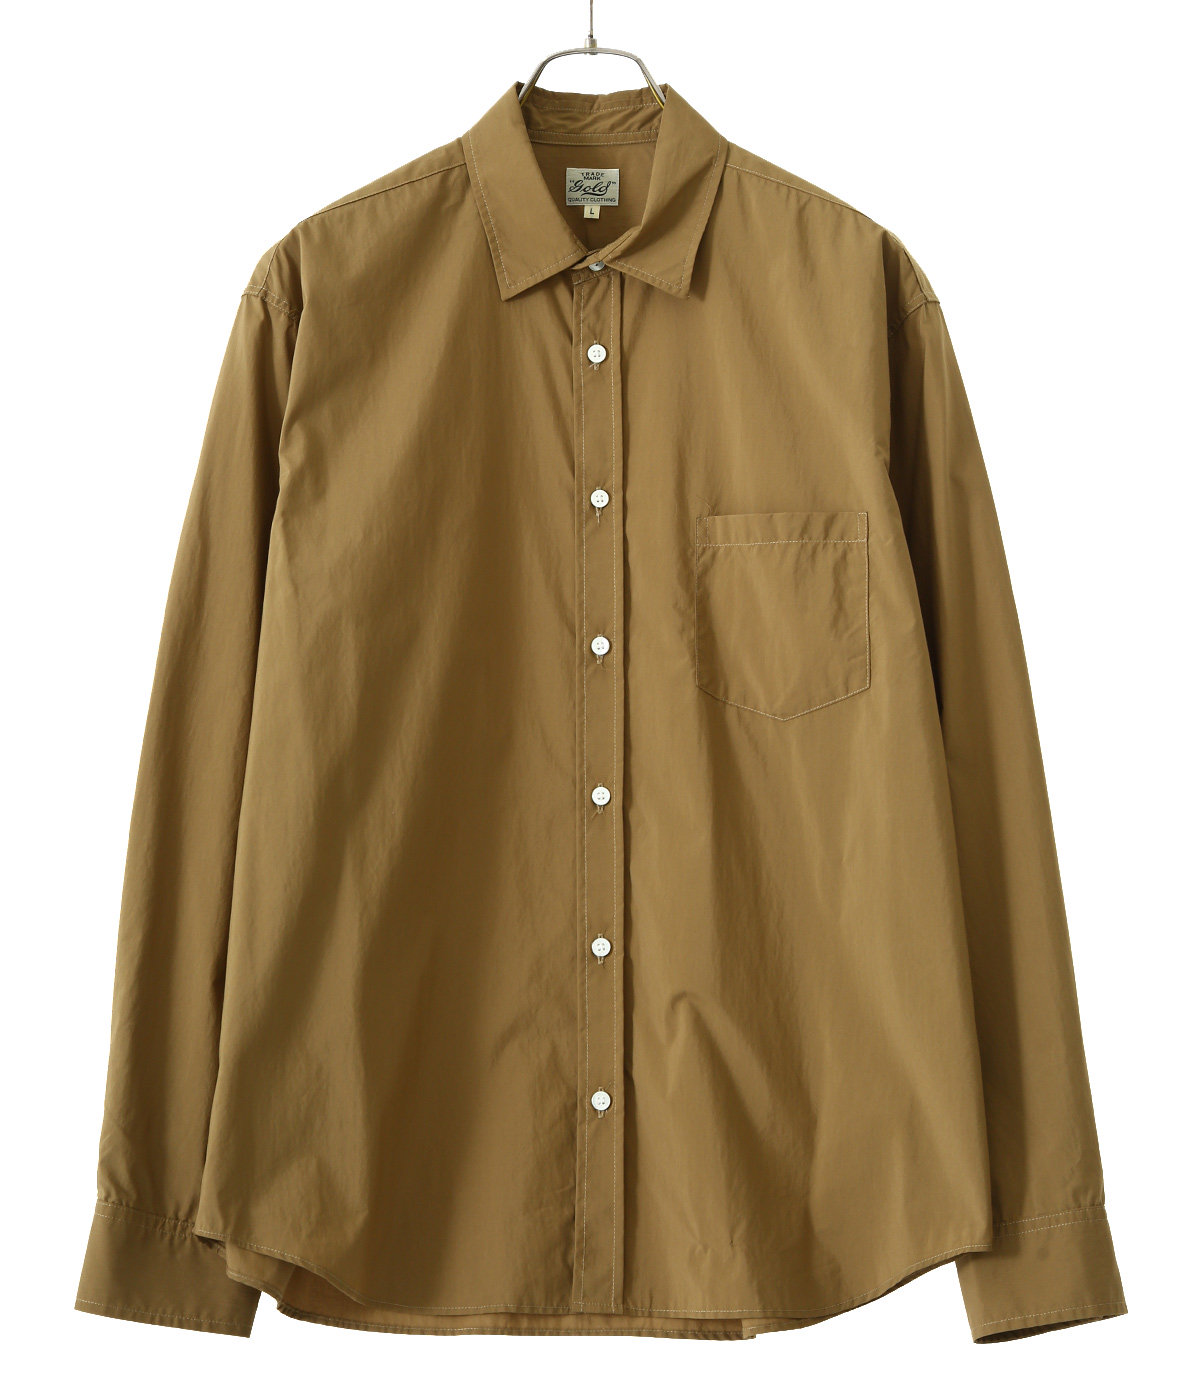 【予約】COTTON / NYLON WEATHER SHIRT (REGULAR FIT)